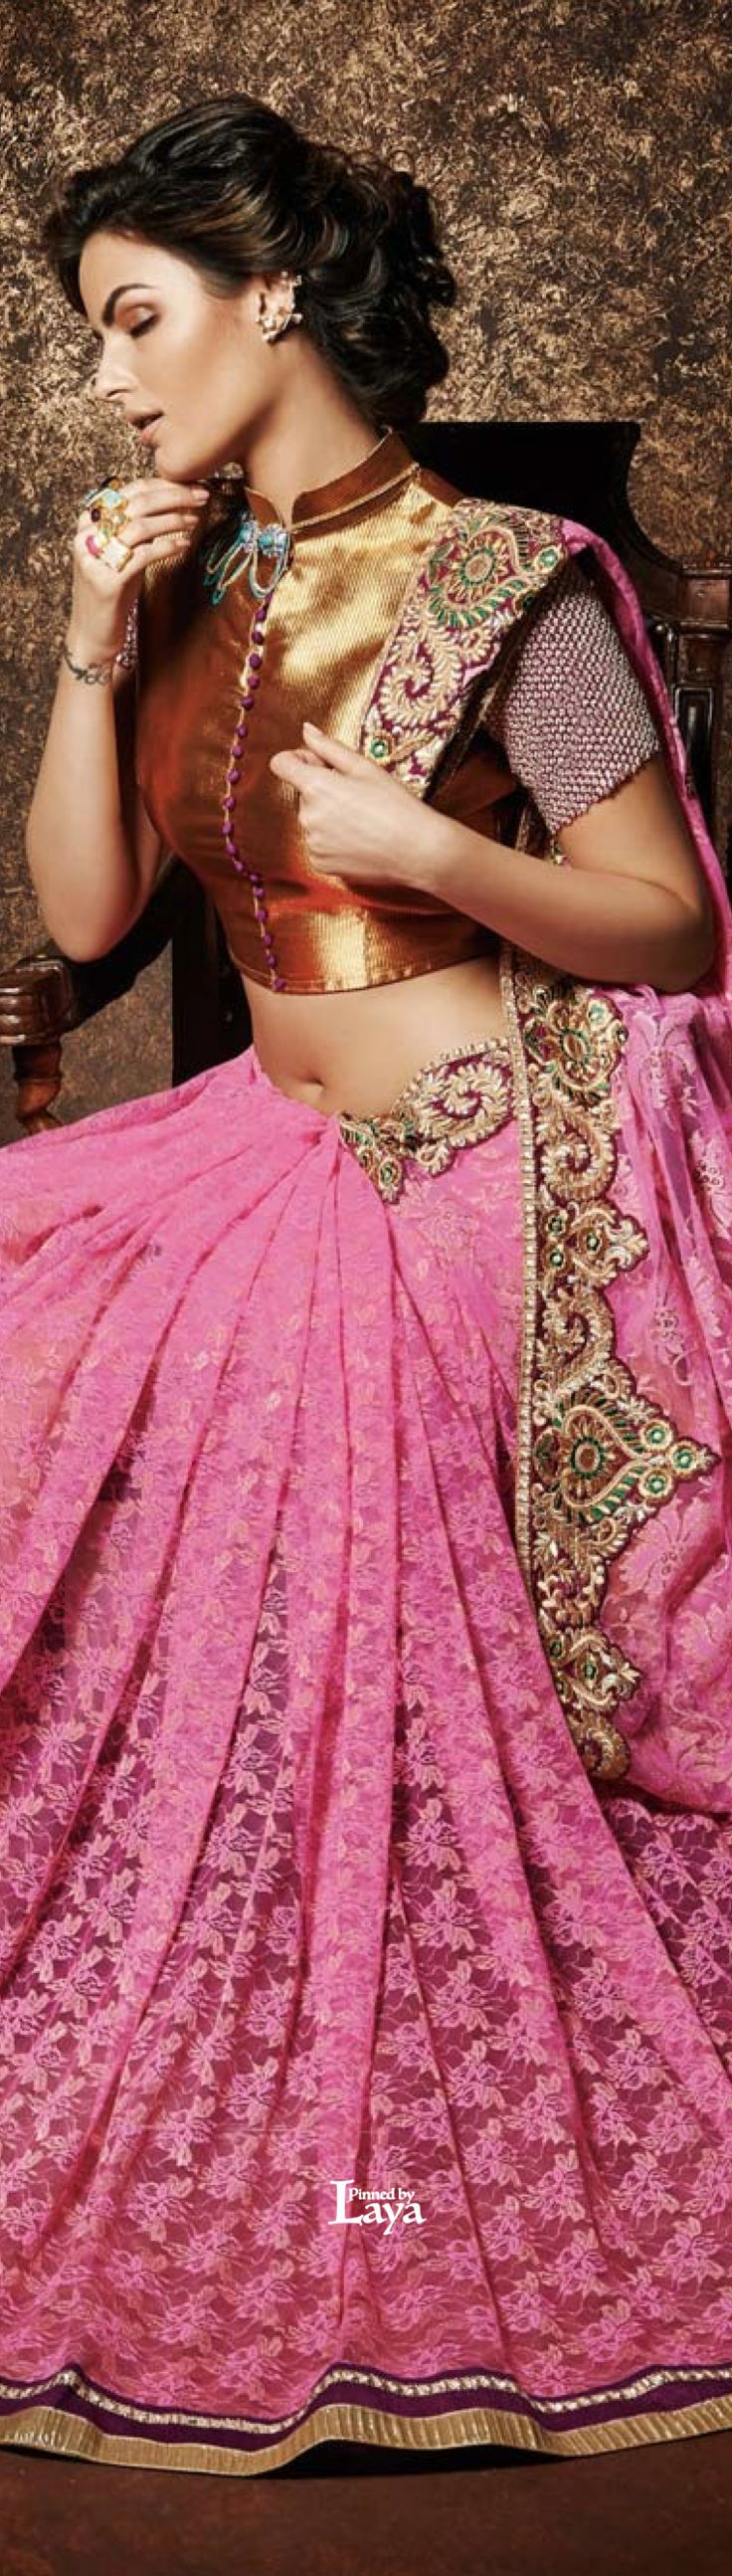 Pink and gold saree or sari with blouse. Indian fashion.